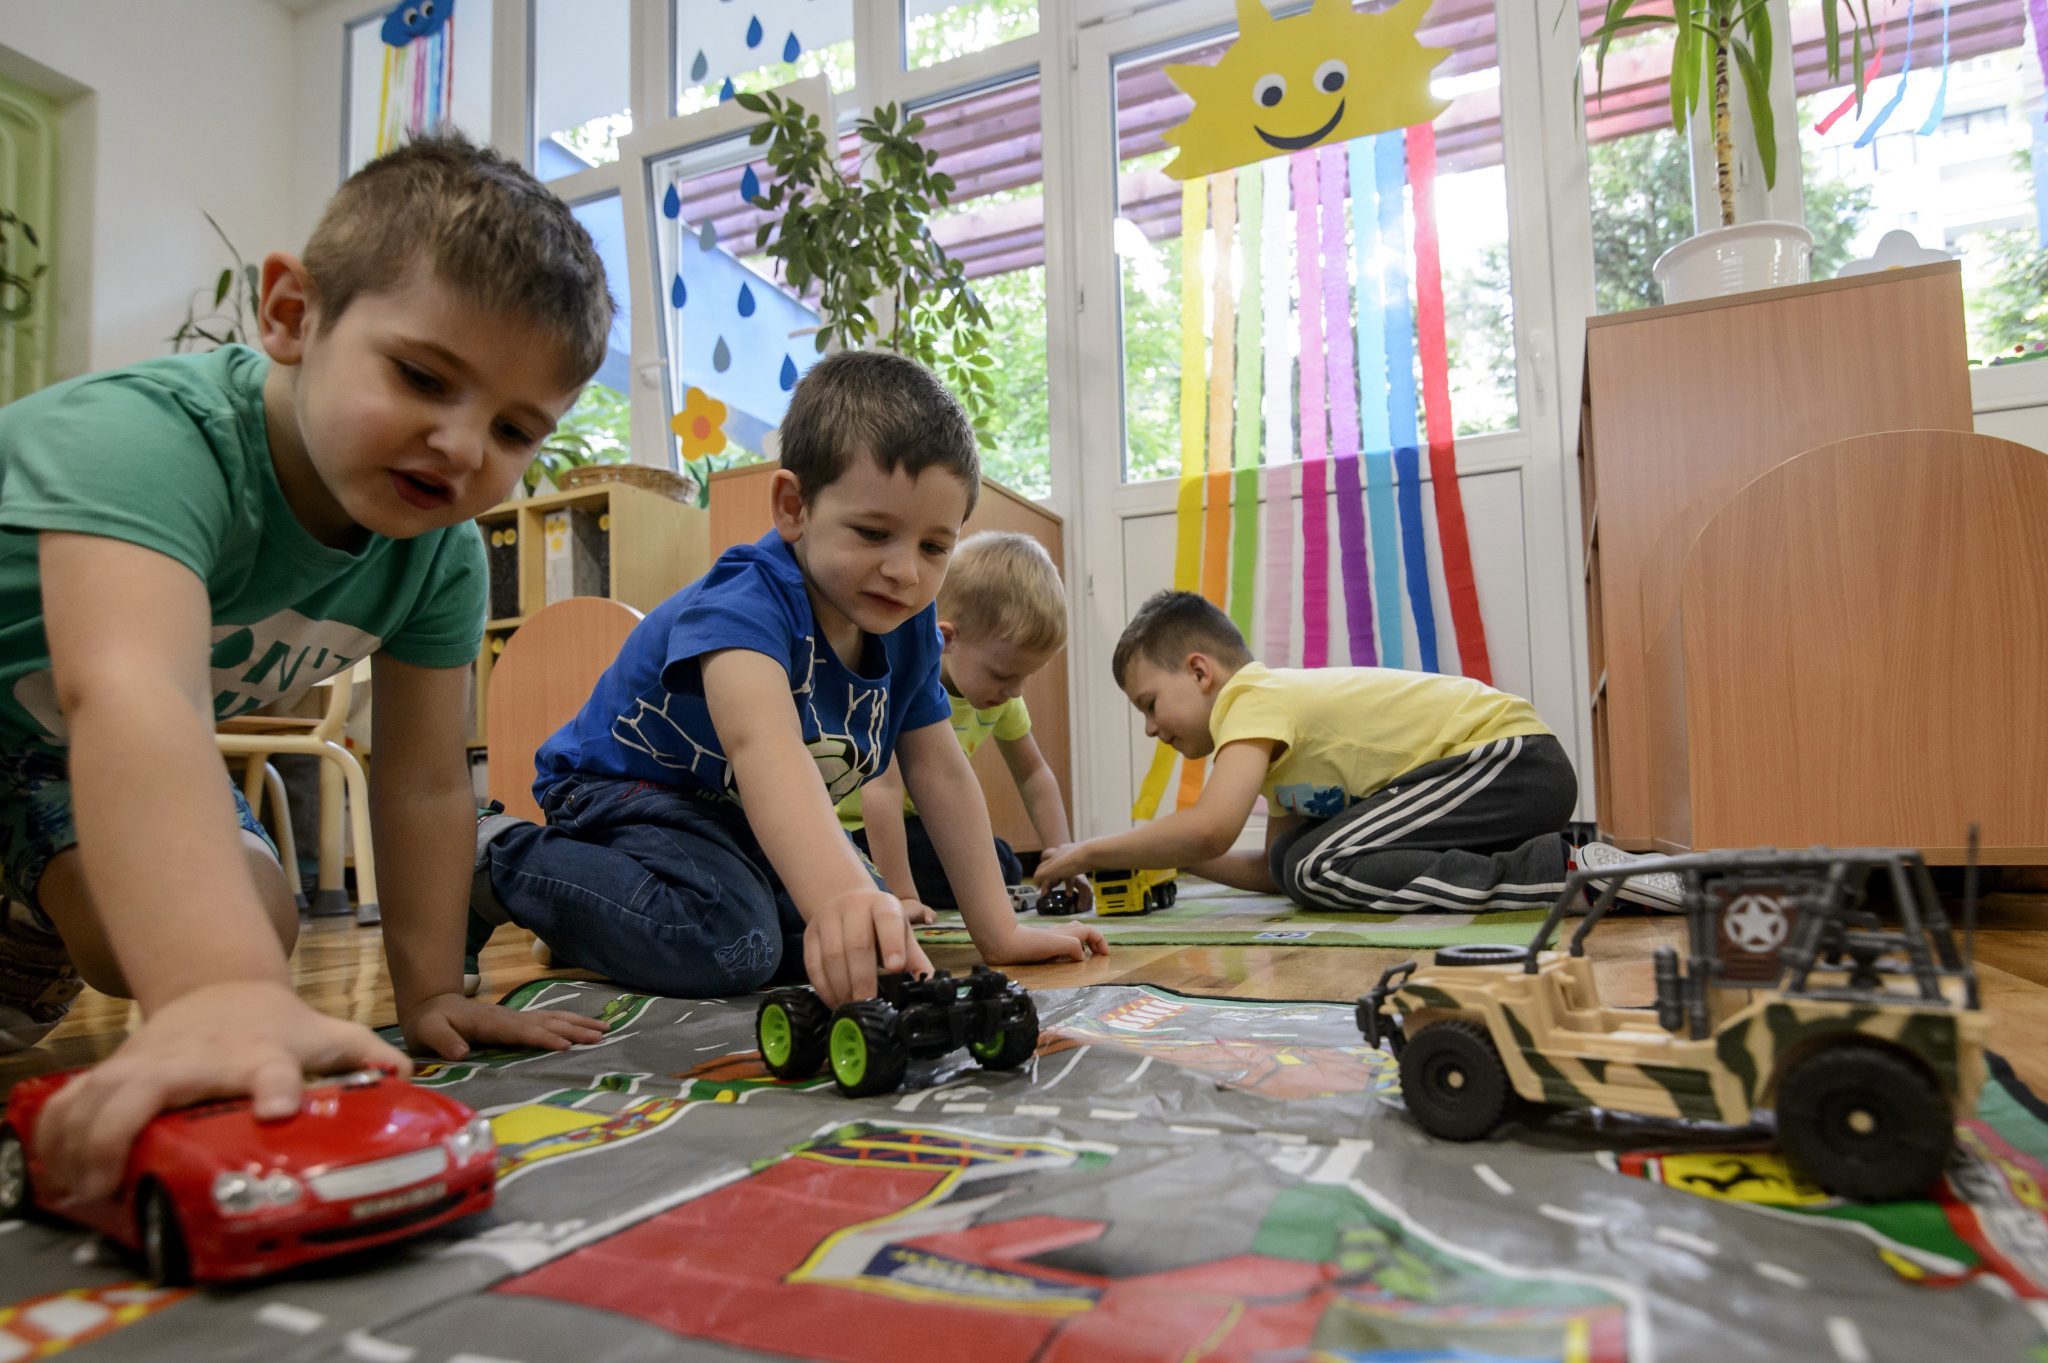 UNICEF Report: Hungary's Child Welfare Ranks 15th on EU, OECD List post's picture